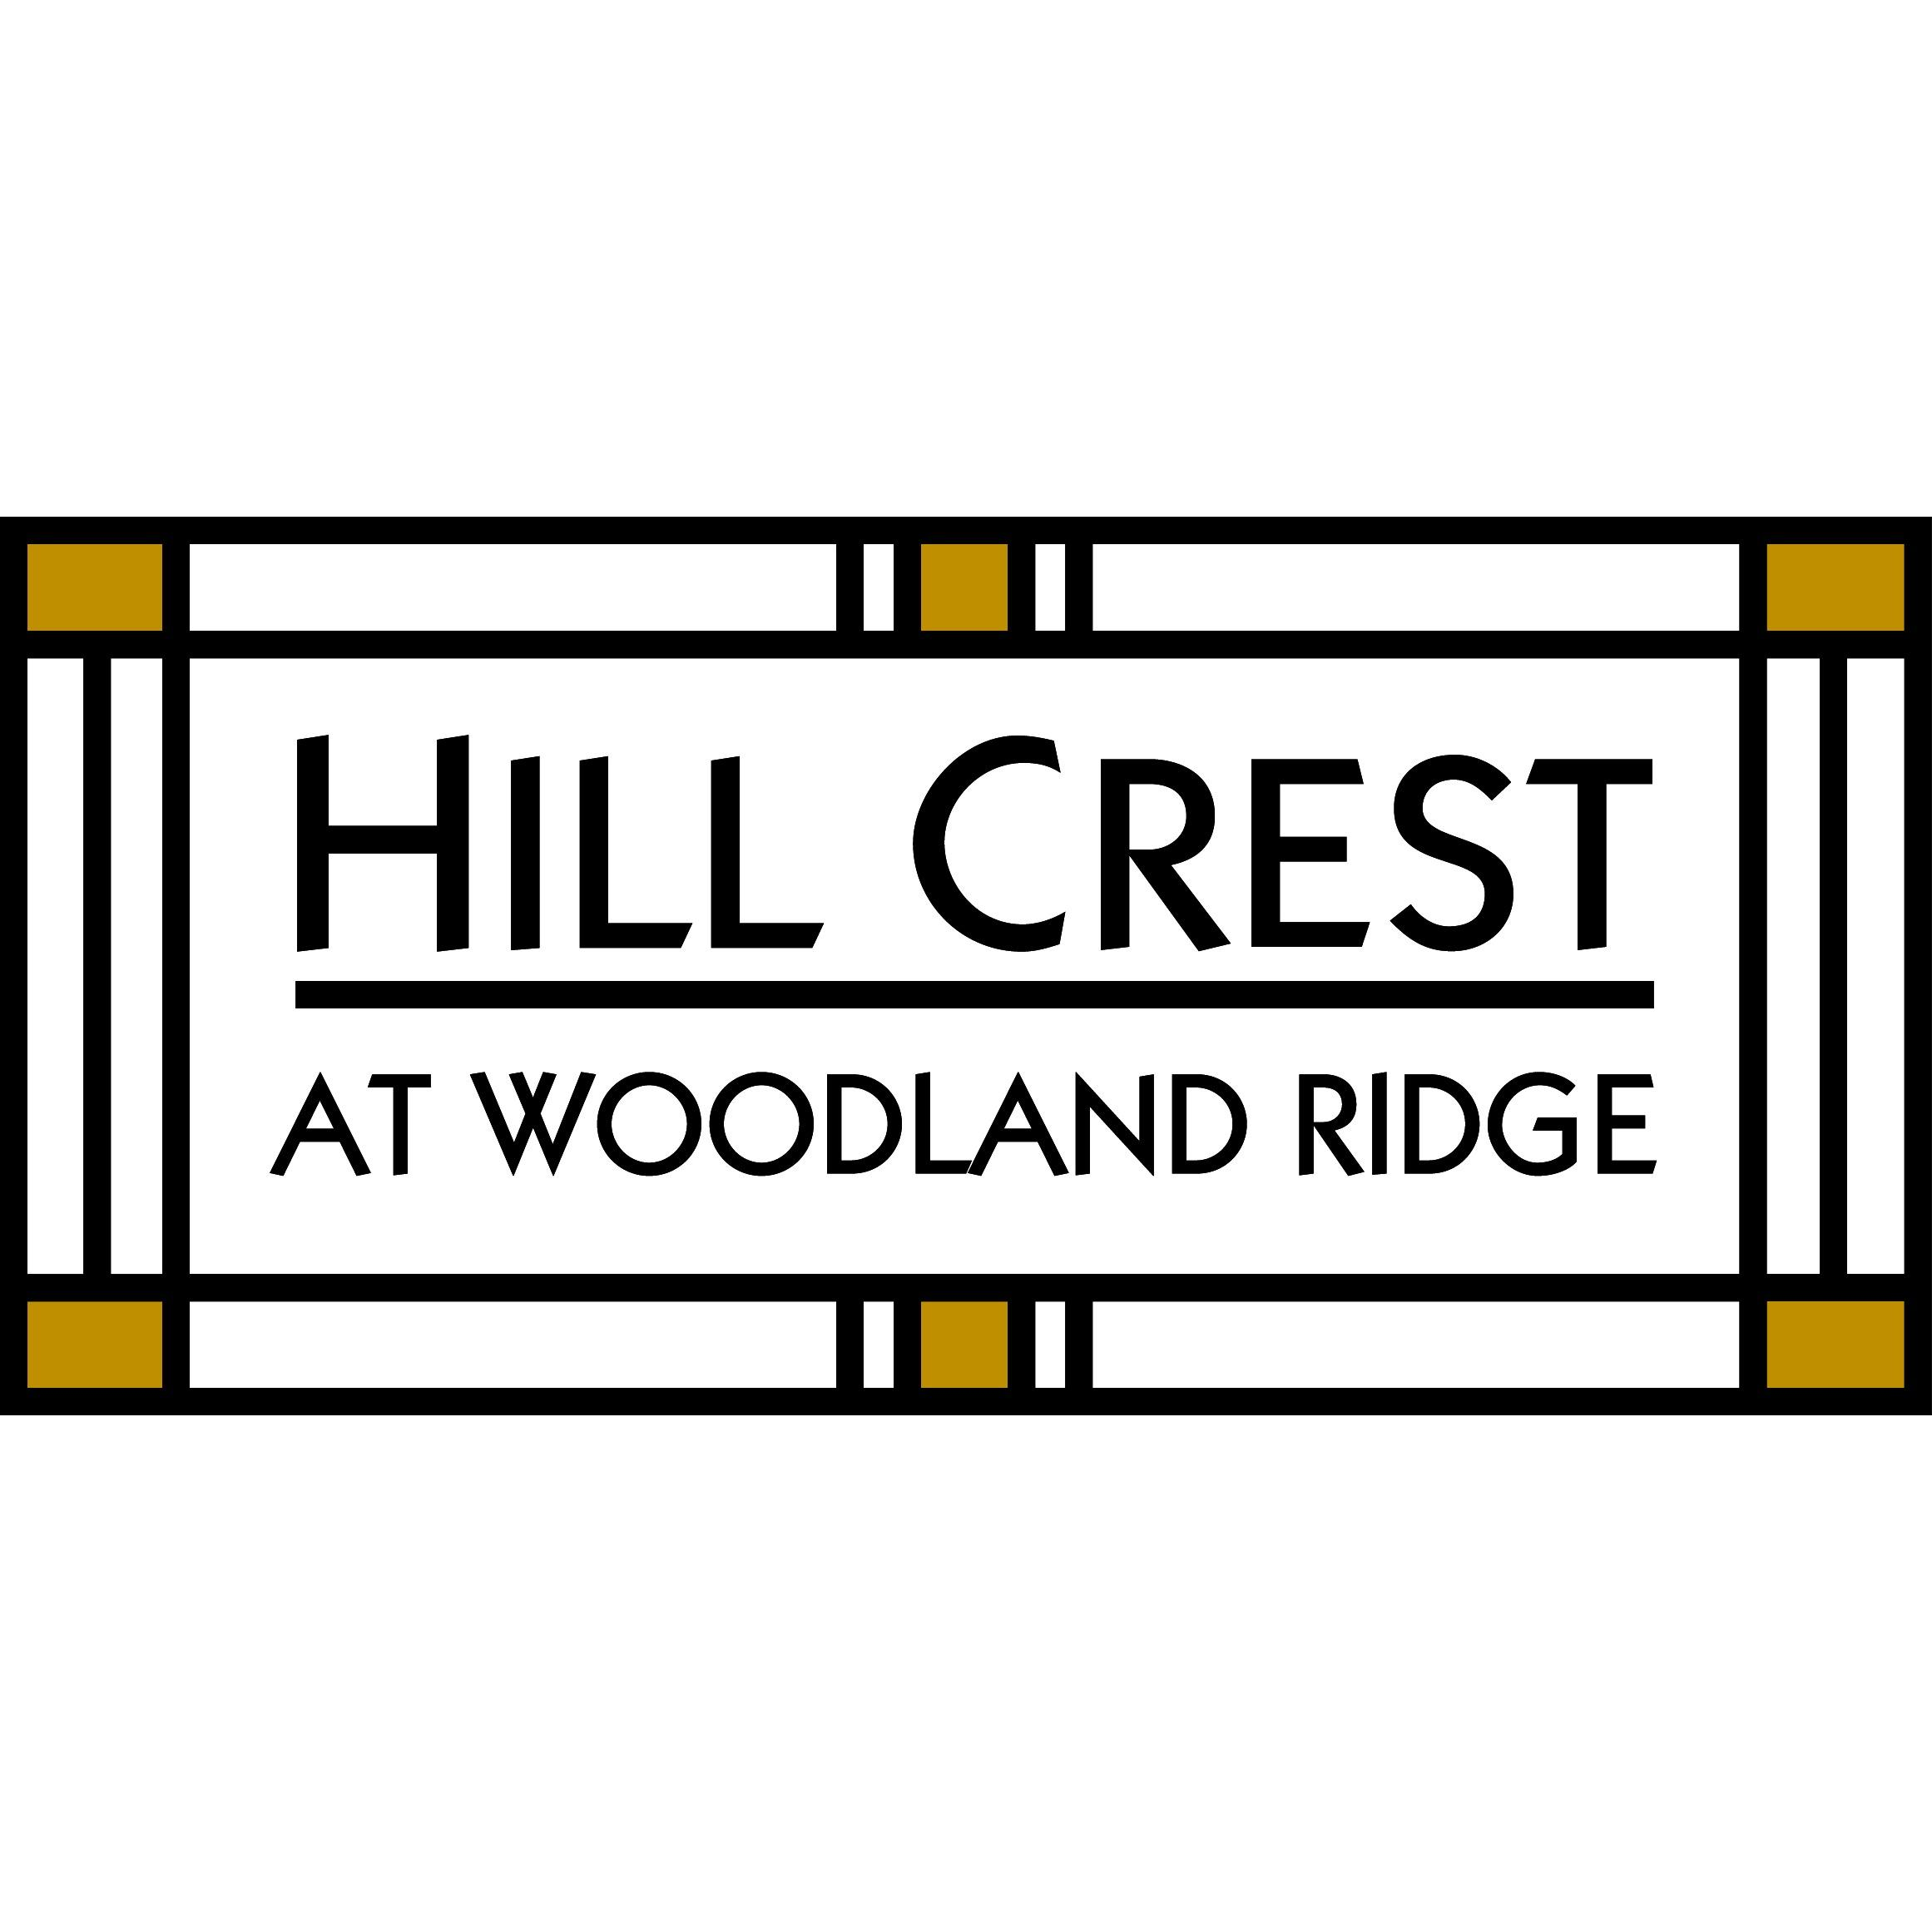 Hill Crest Senior Apartments - Greenfield, WI 53228 - (414)541-3333 | ShowMeLocal.com